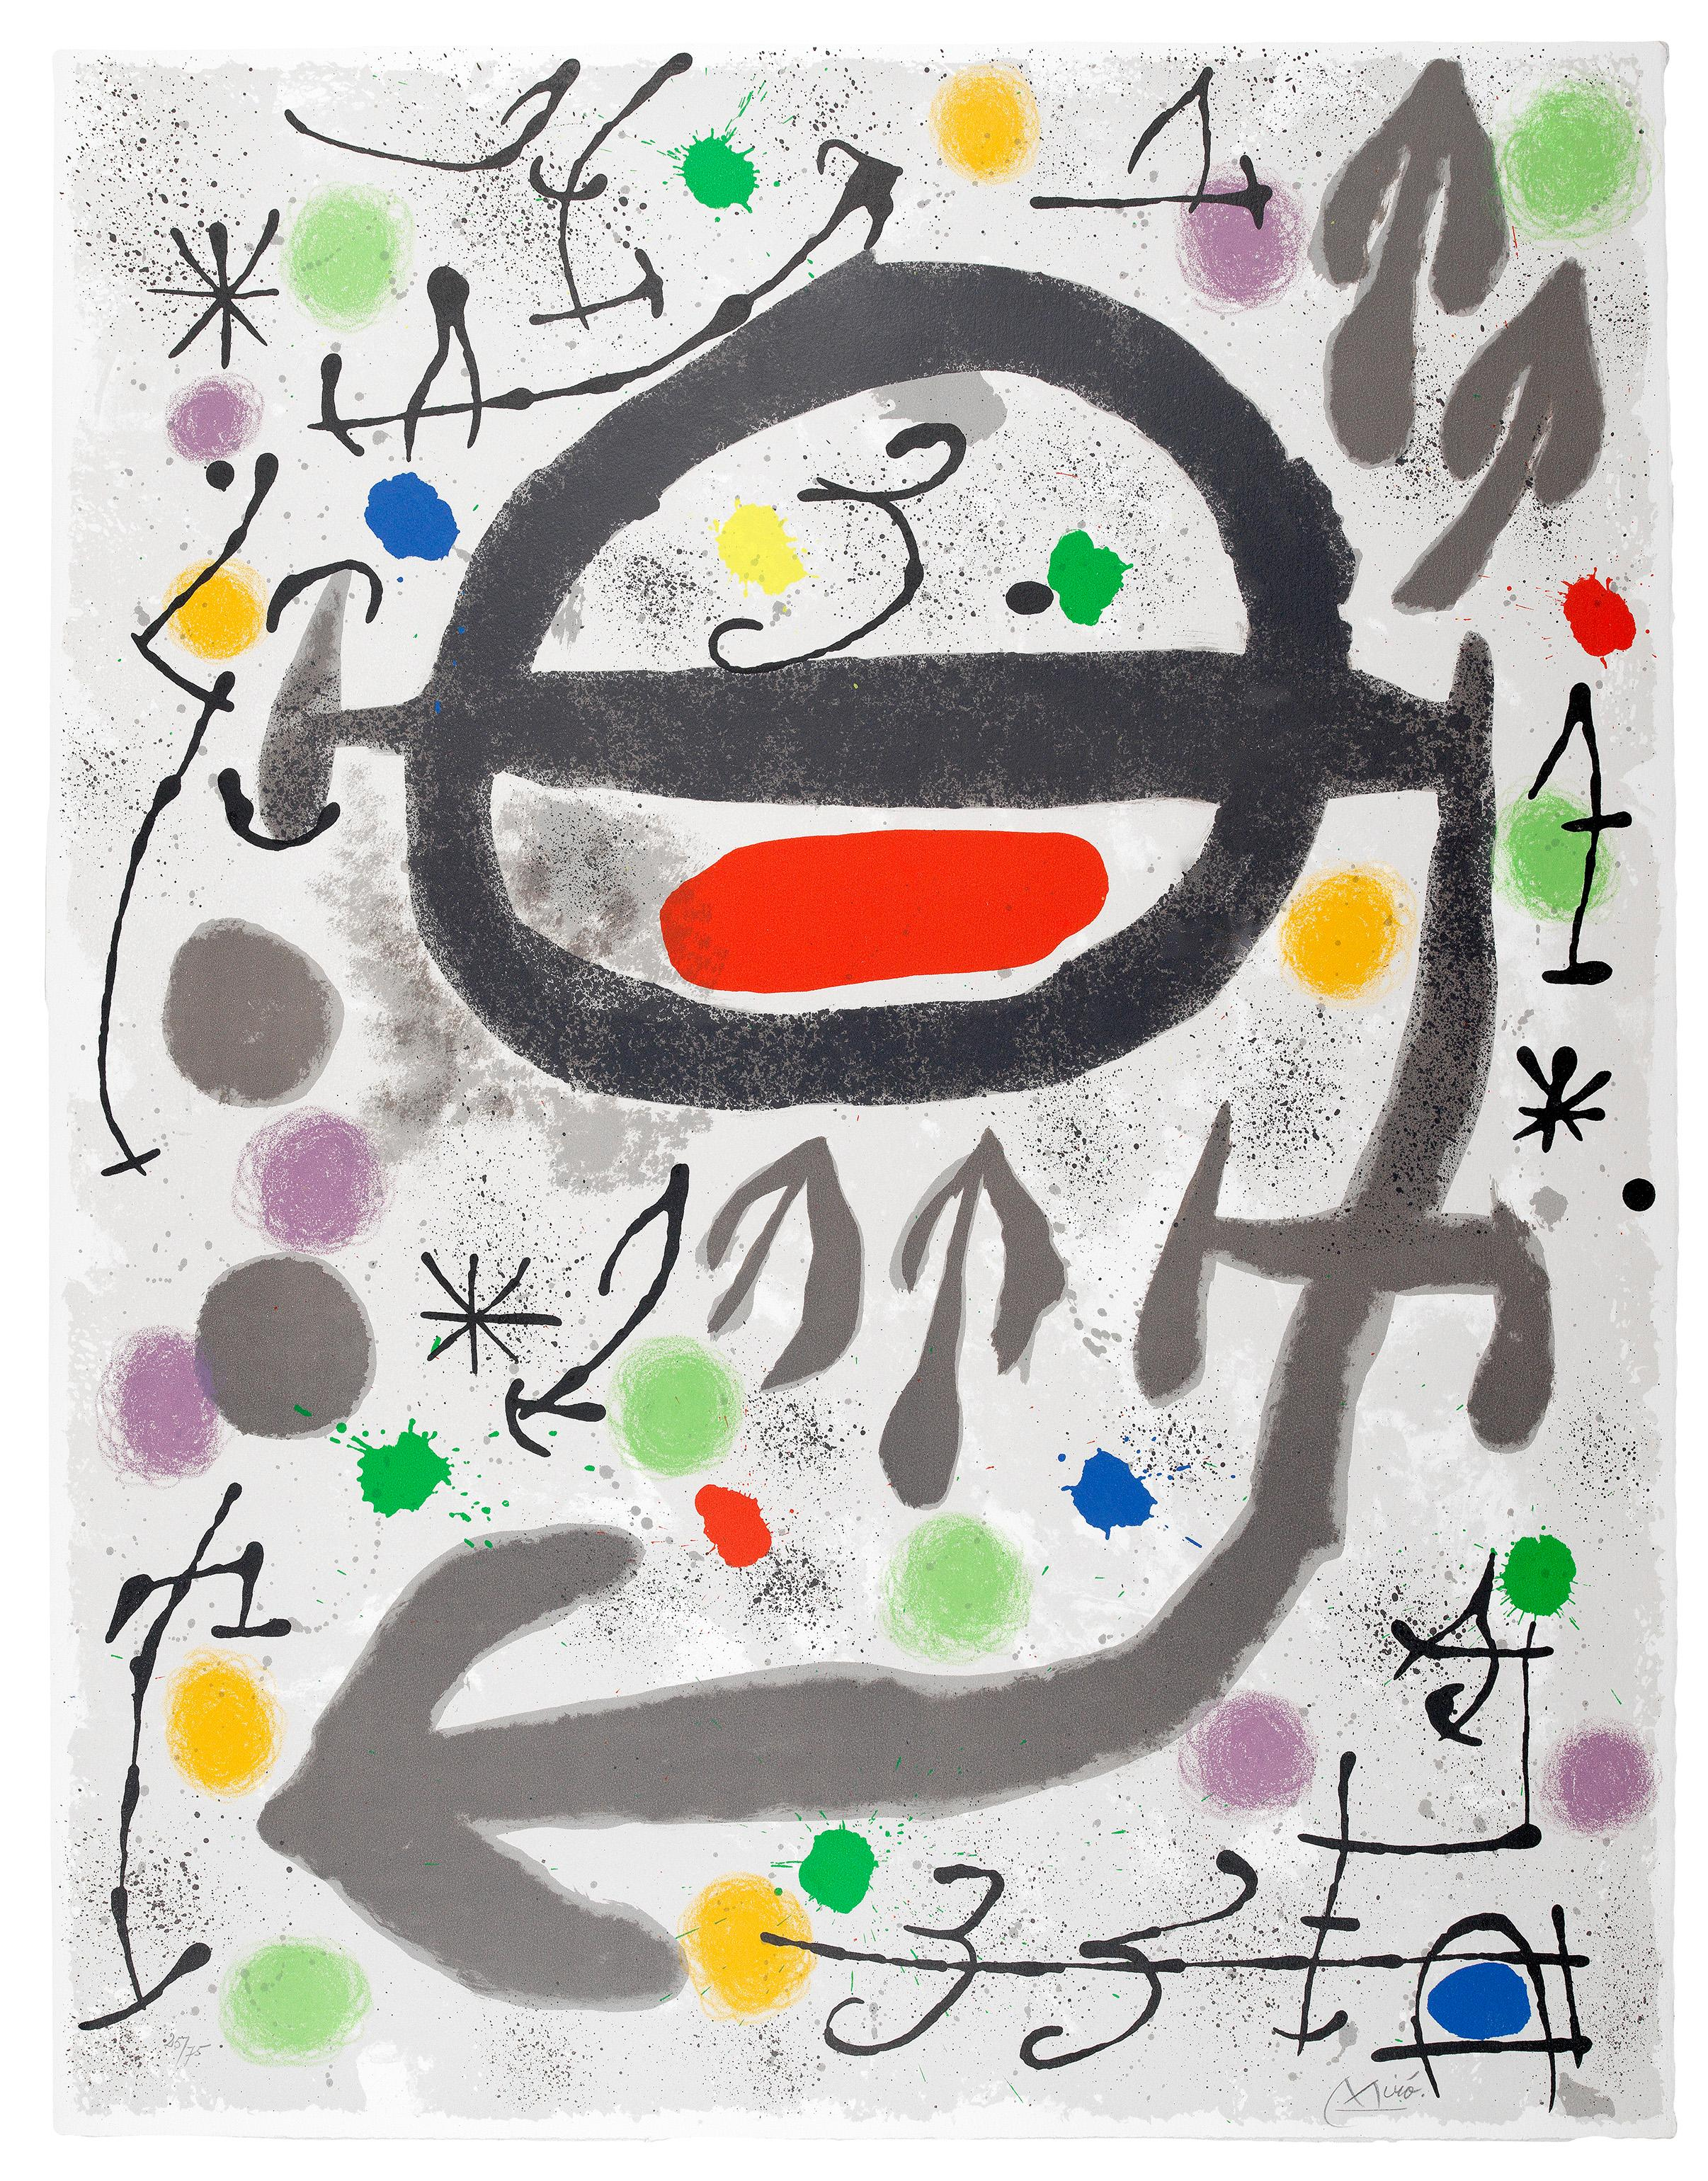 Les Perseides: Plate III - Joan Miró, Lithograph, Abstract prints